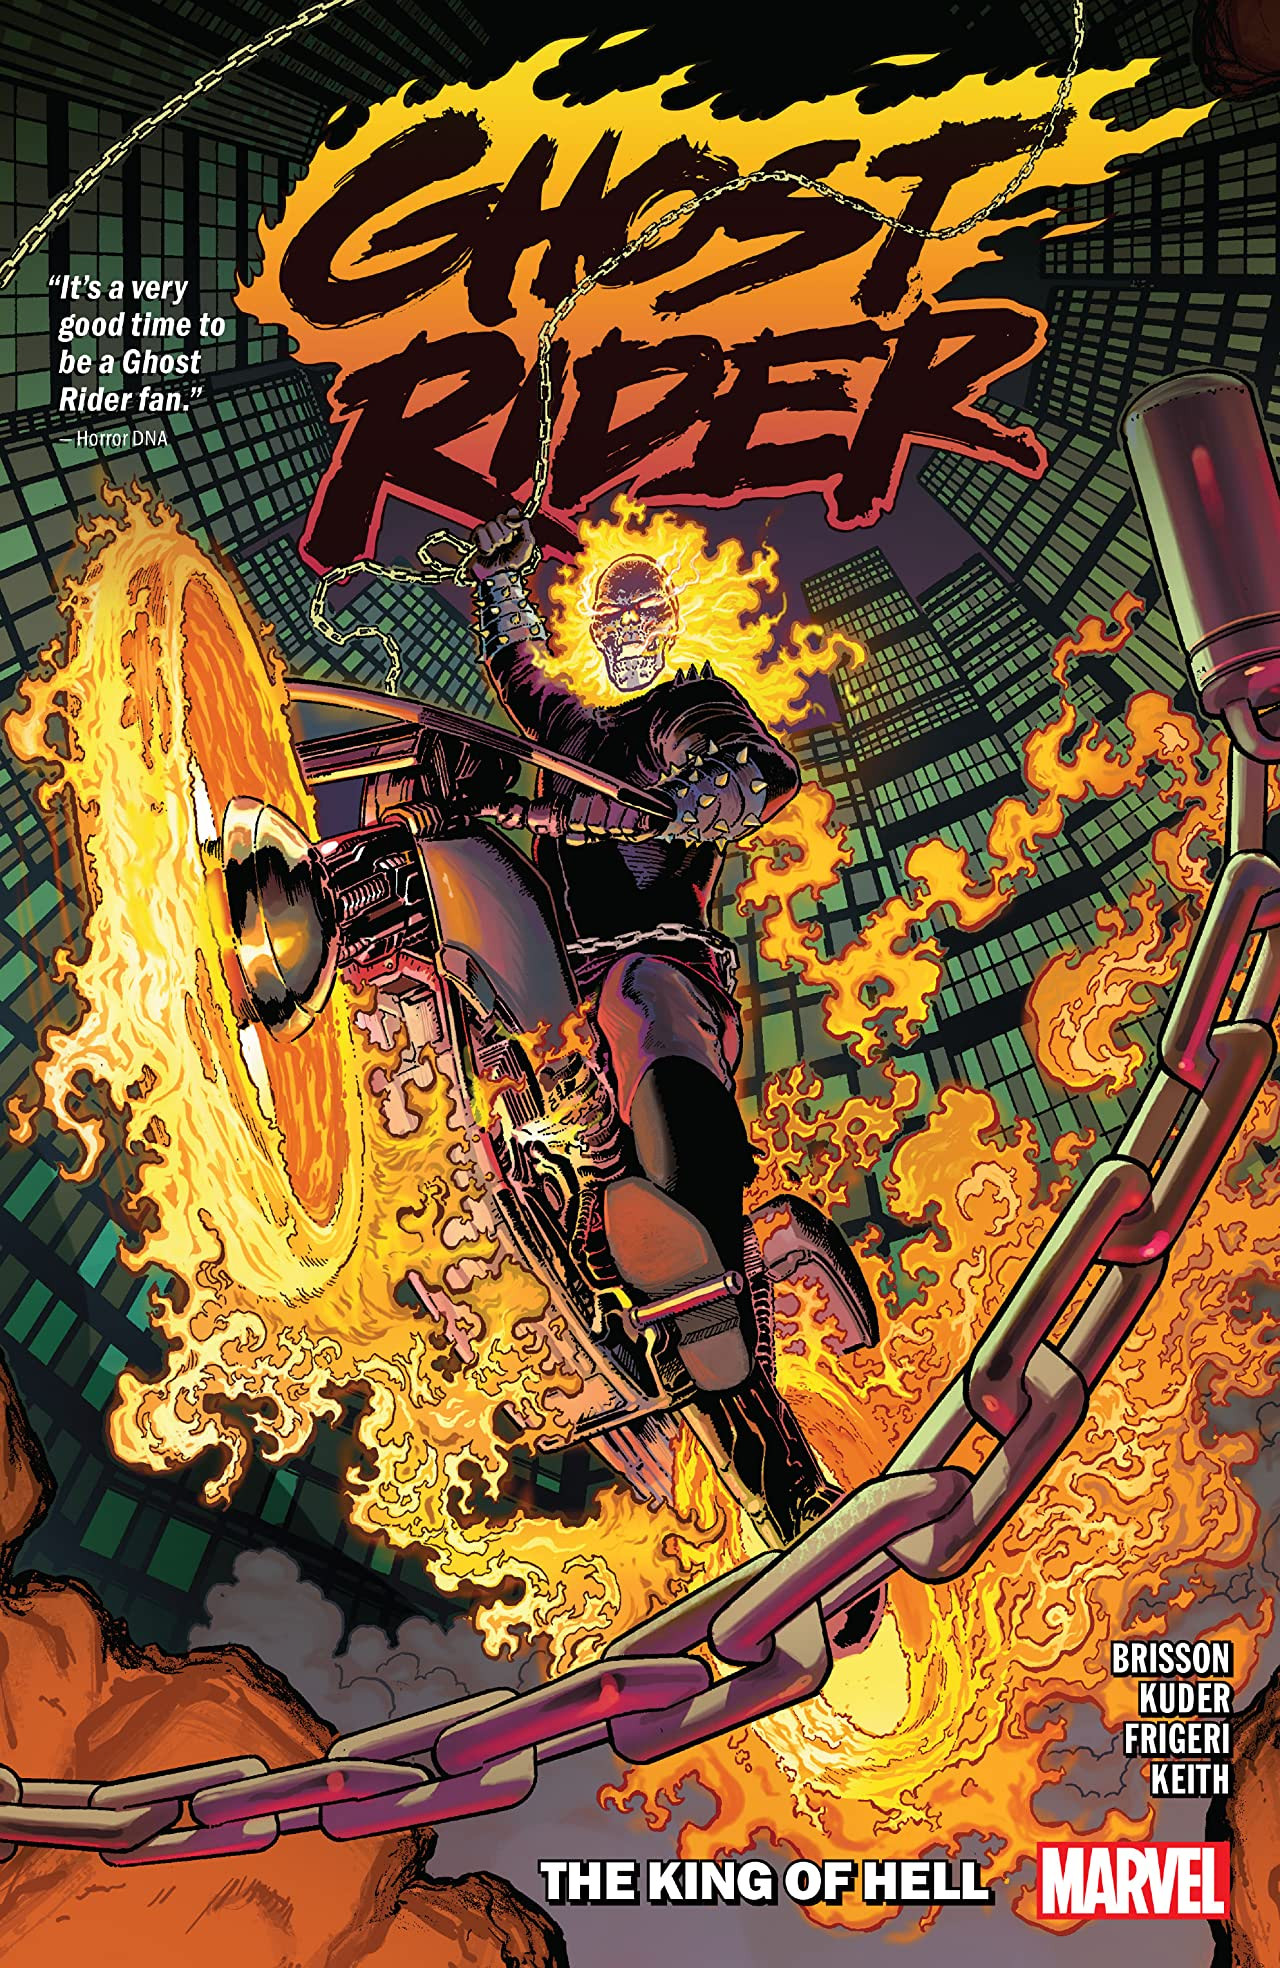 Ghost Rider TPB Vol 1 1: The King of Hell